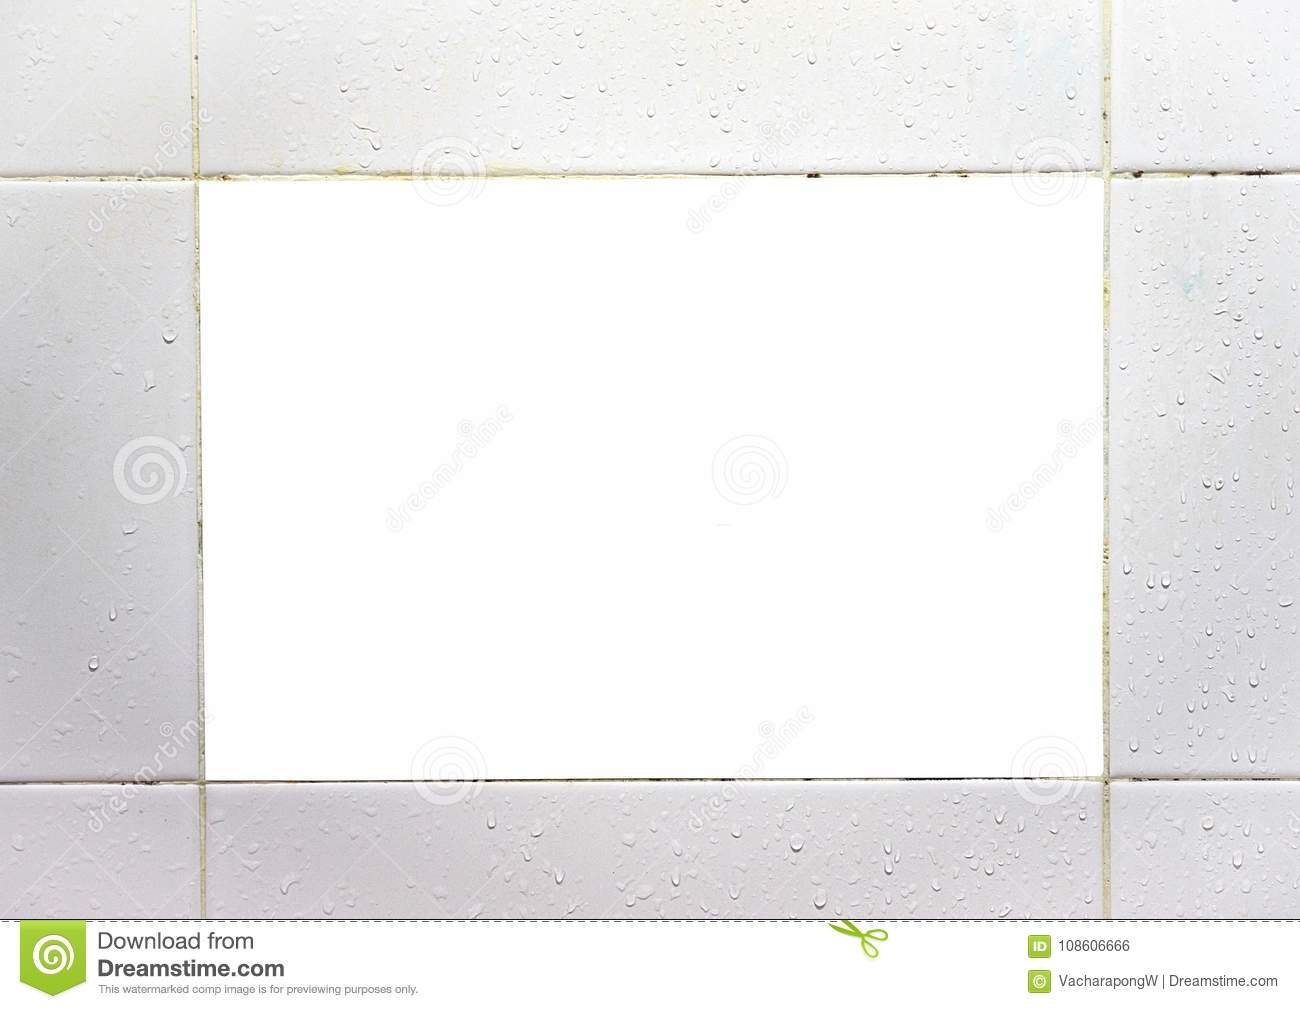 Whtie blank rectangle frame made of ceramic tiles stock photo whtie blank rectangle frame made of ceramic tiles dailygadgetfo Gallery